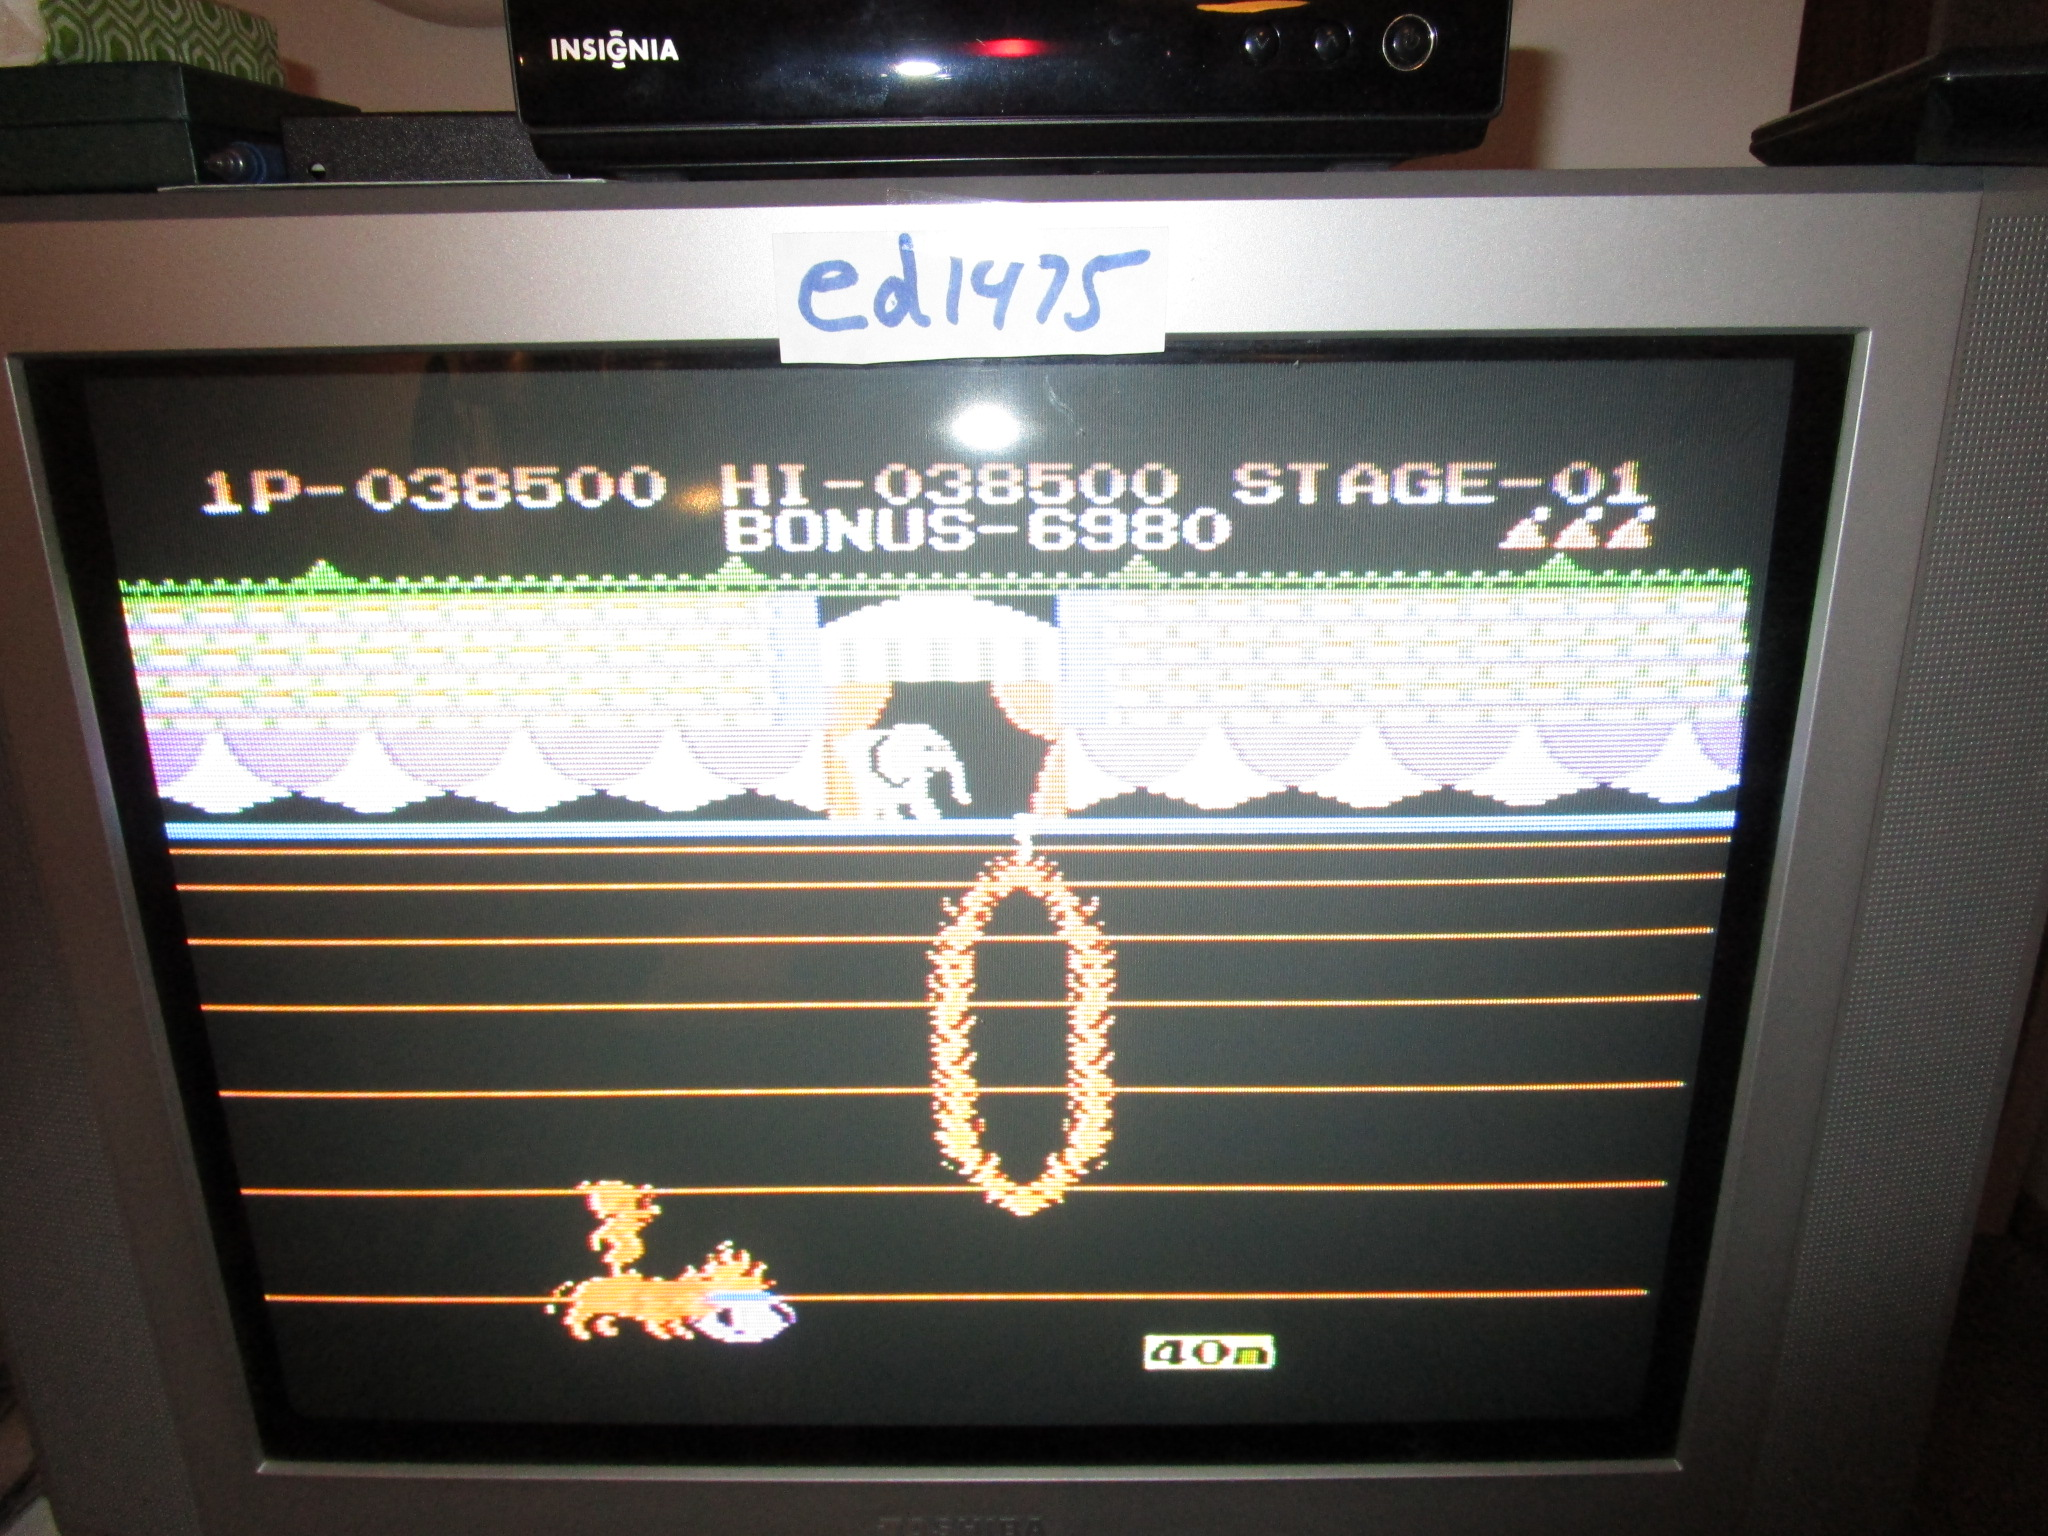 ed1475: Circus Charlie (Colecovision) 38,500 points on 2014-12-23 20:03:55